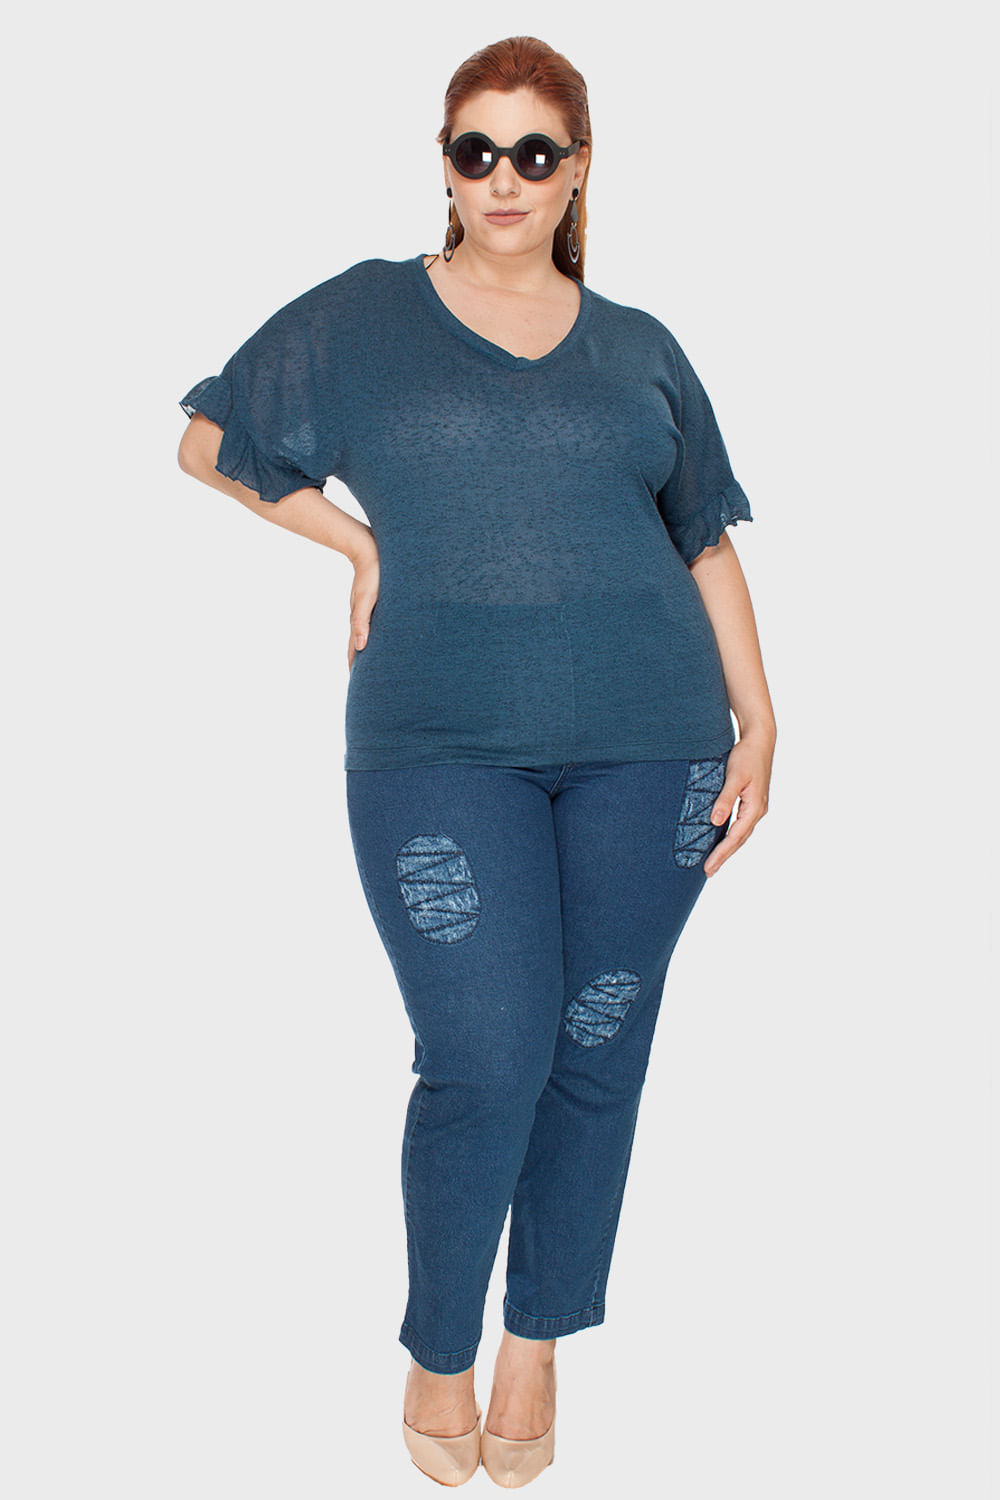 Blusa-New-Antropology-Babados-Plus-Size_4